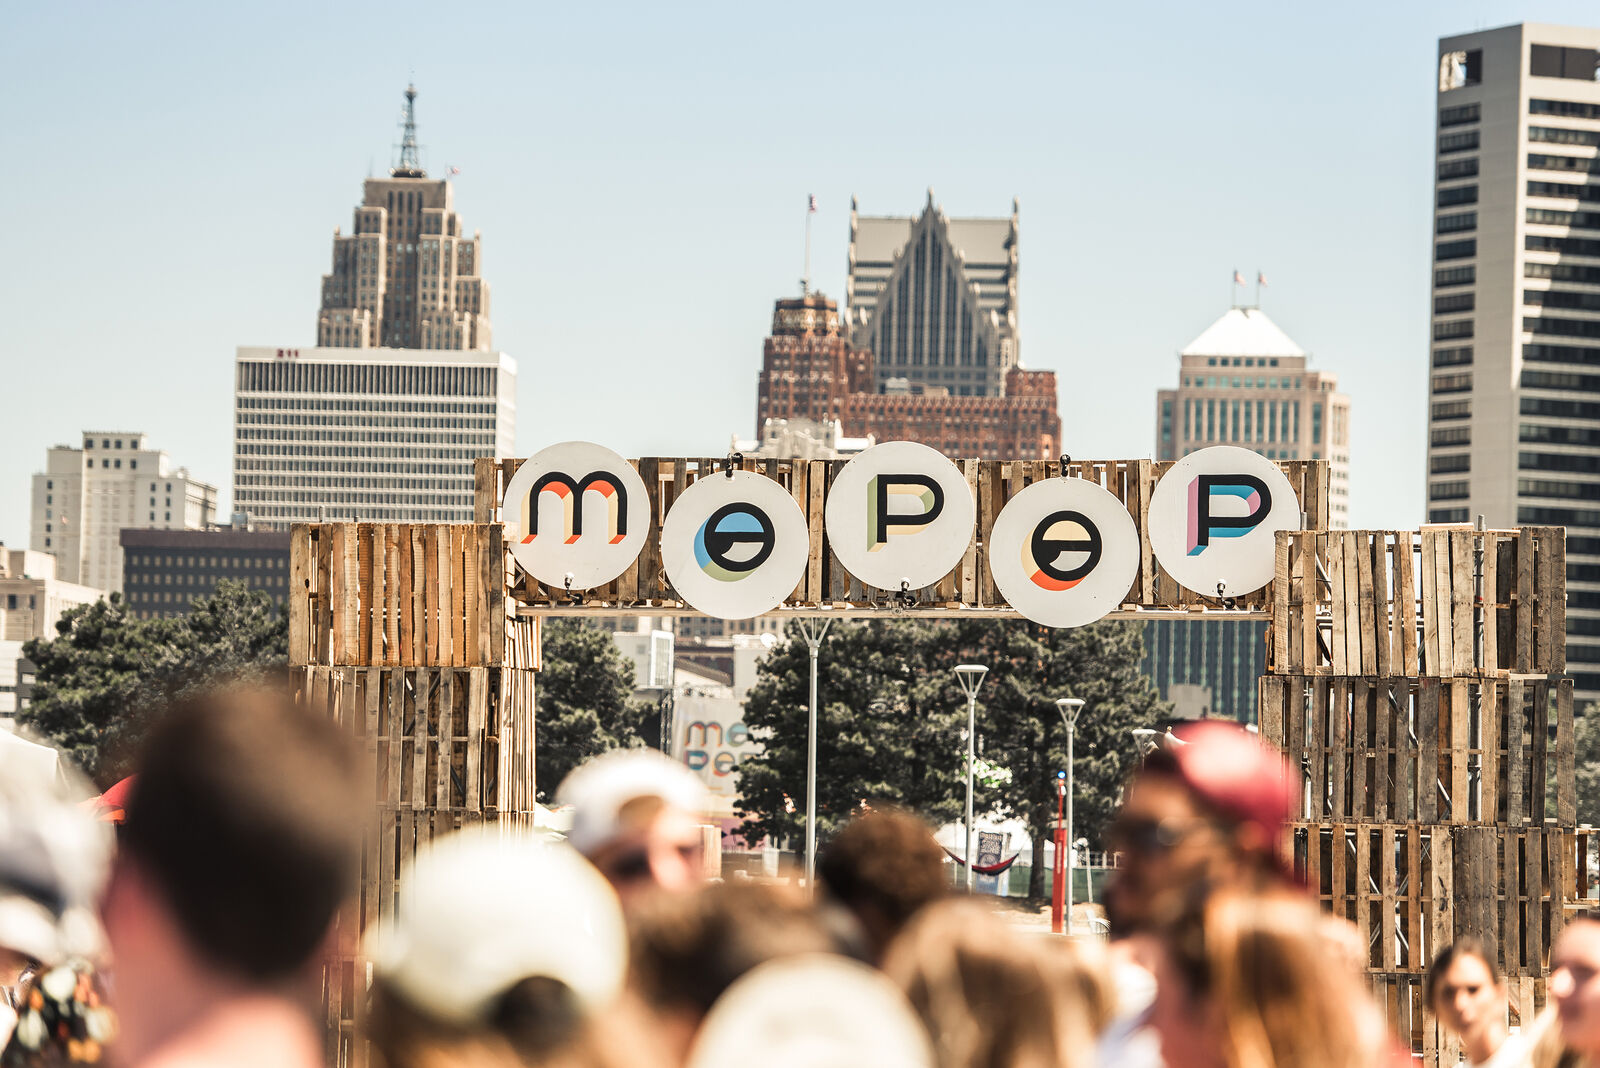 Mo Pop Festival Weekend Pass featuring Bon Iver, The National, Portugal. The Man and more Tickets (Jul 28-29)